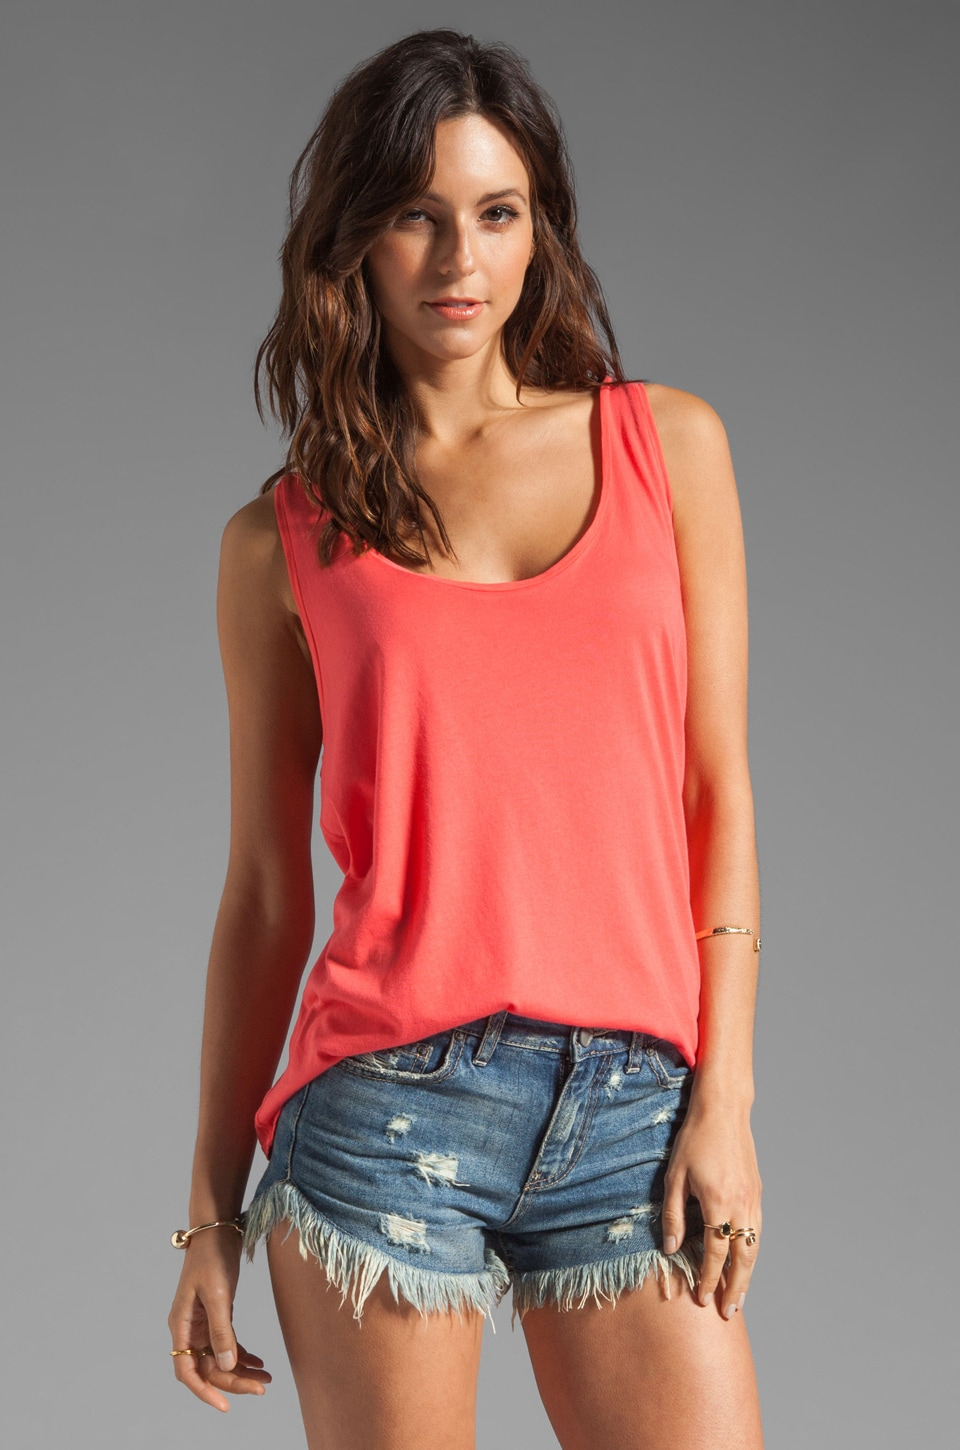 Soft Joie Ira Garmet Dyed Tank in Neon Coral